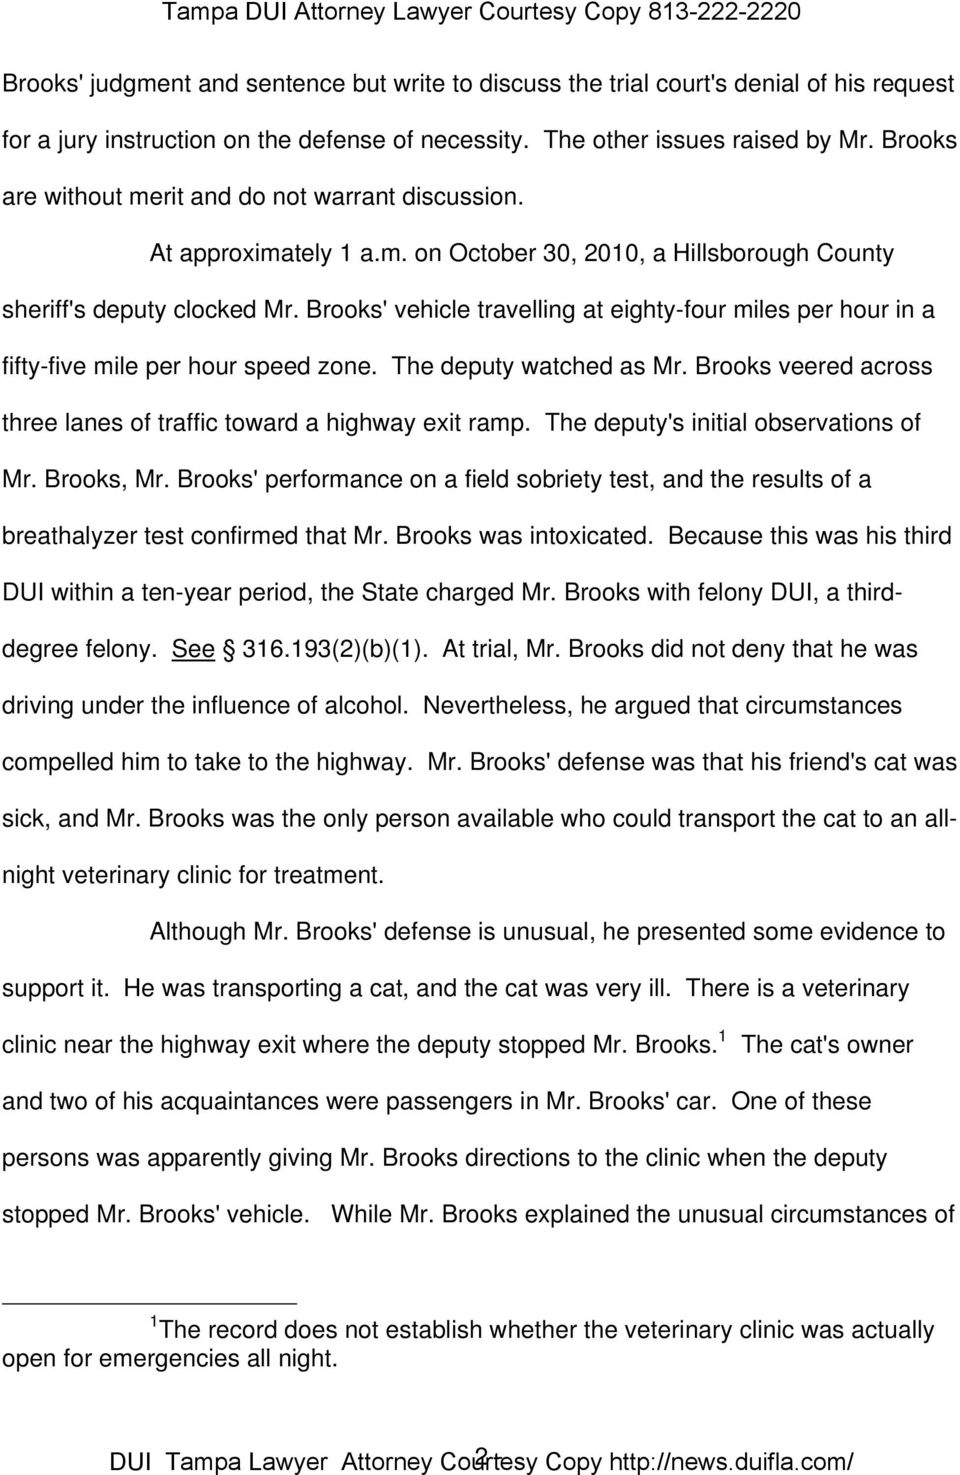 Brooks' vehicle travelling at eighty-four miles per hour in a fifty-five mile per hour speed zone. The deputy watched as Mr. Brooks veered across three lanes of traffic toward a highway exit ramp.